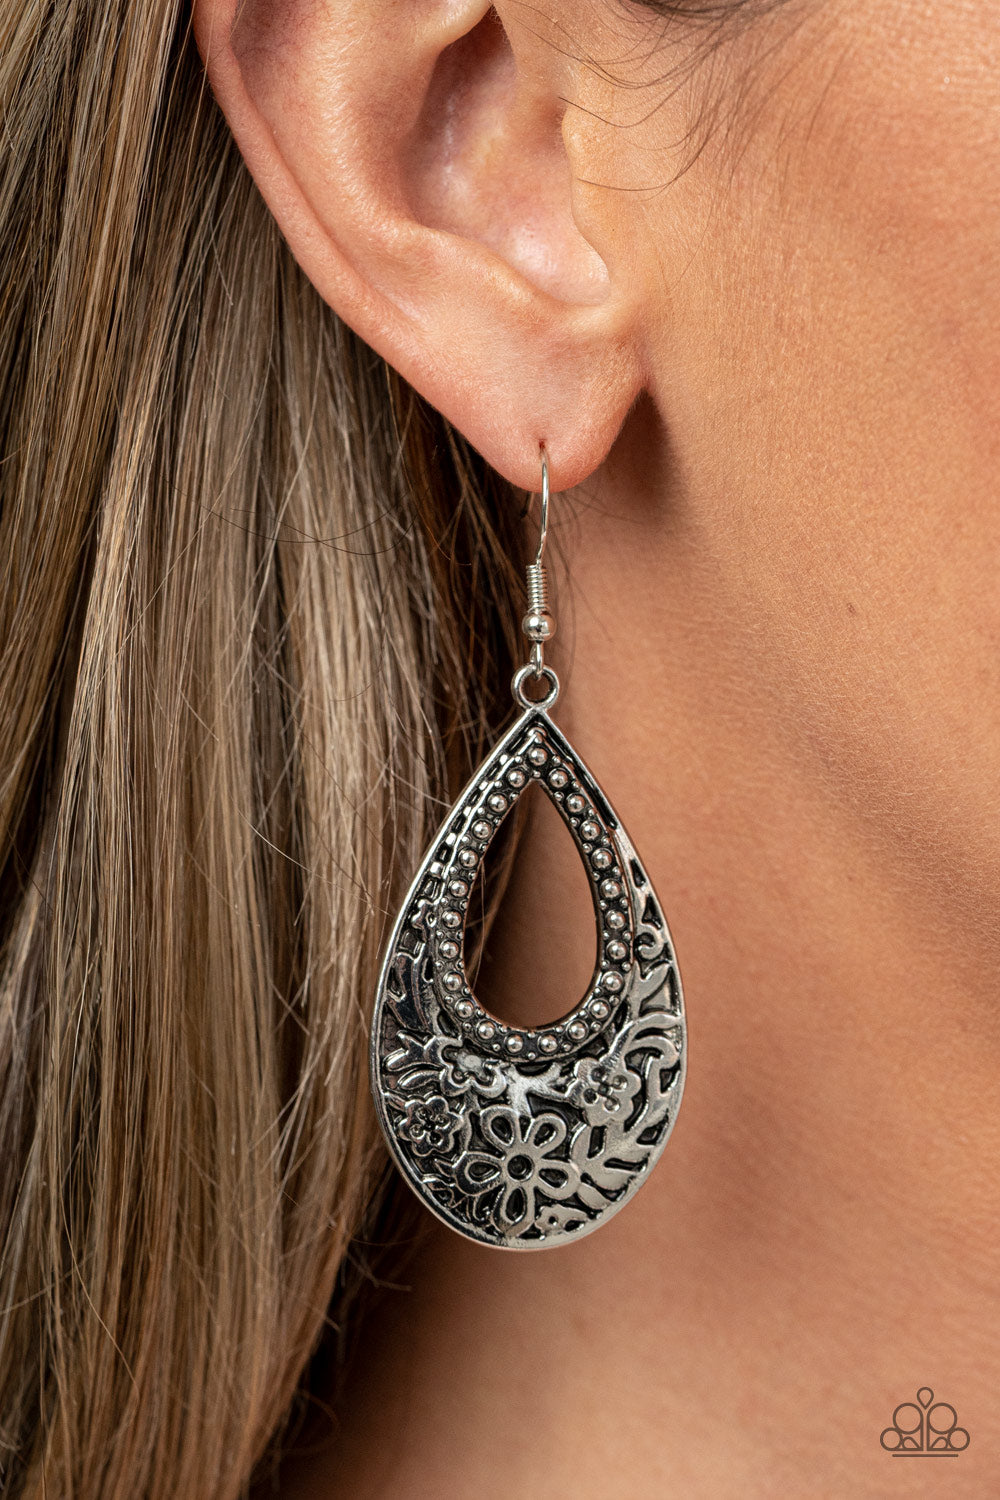 Organically Opulent - Silver Earrings - Paparazzi Accessories